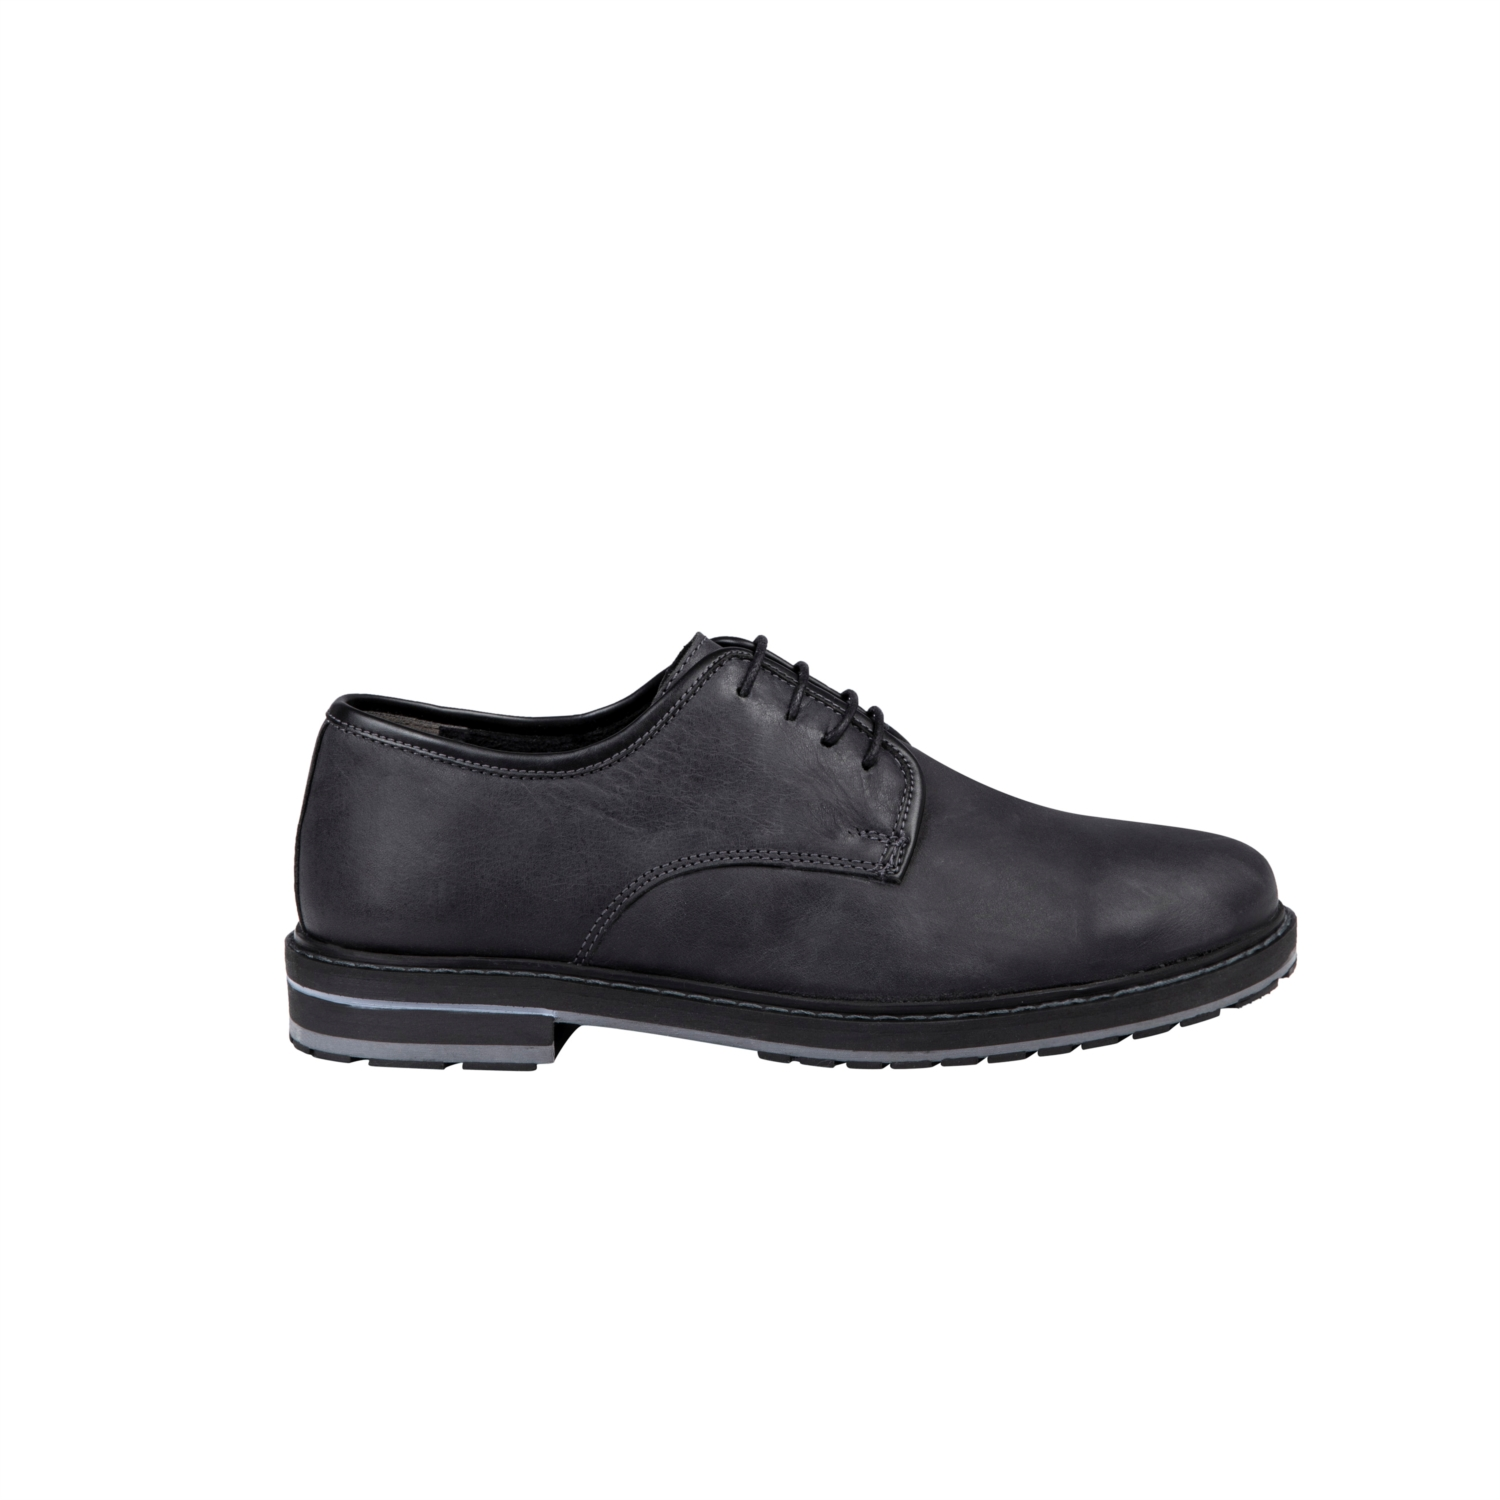 LOAFER OXFORD DERİ AYAKKABI